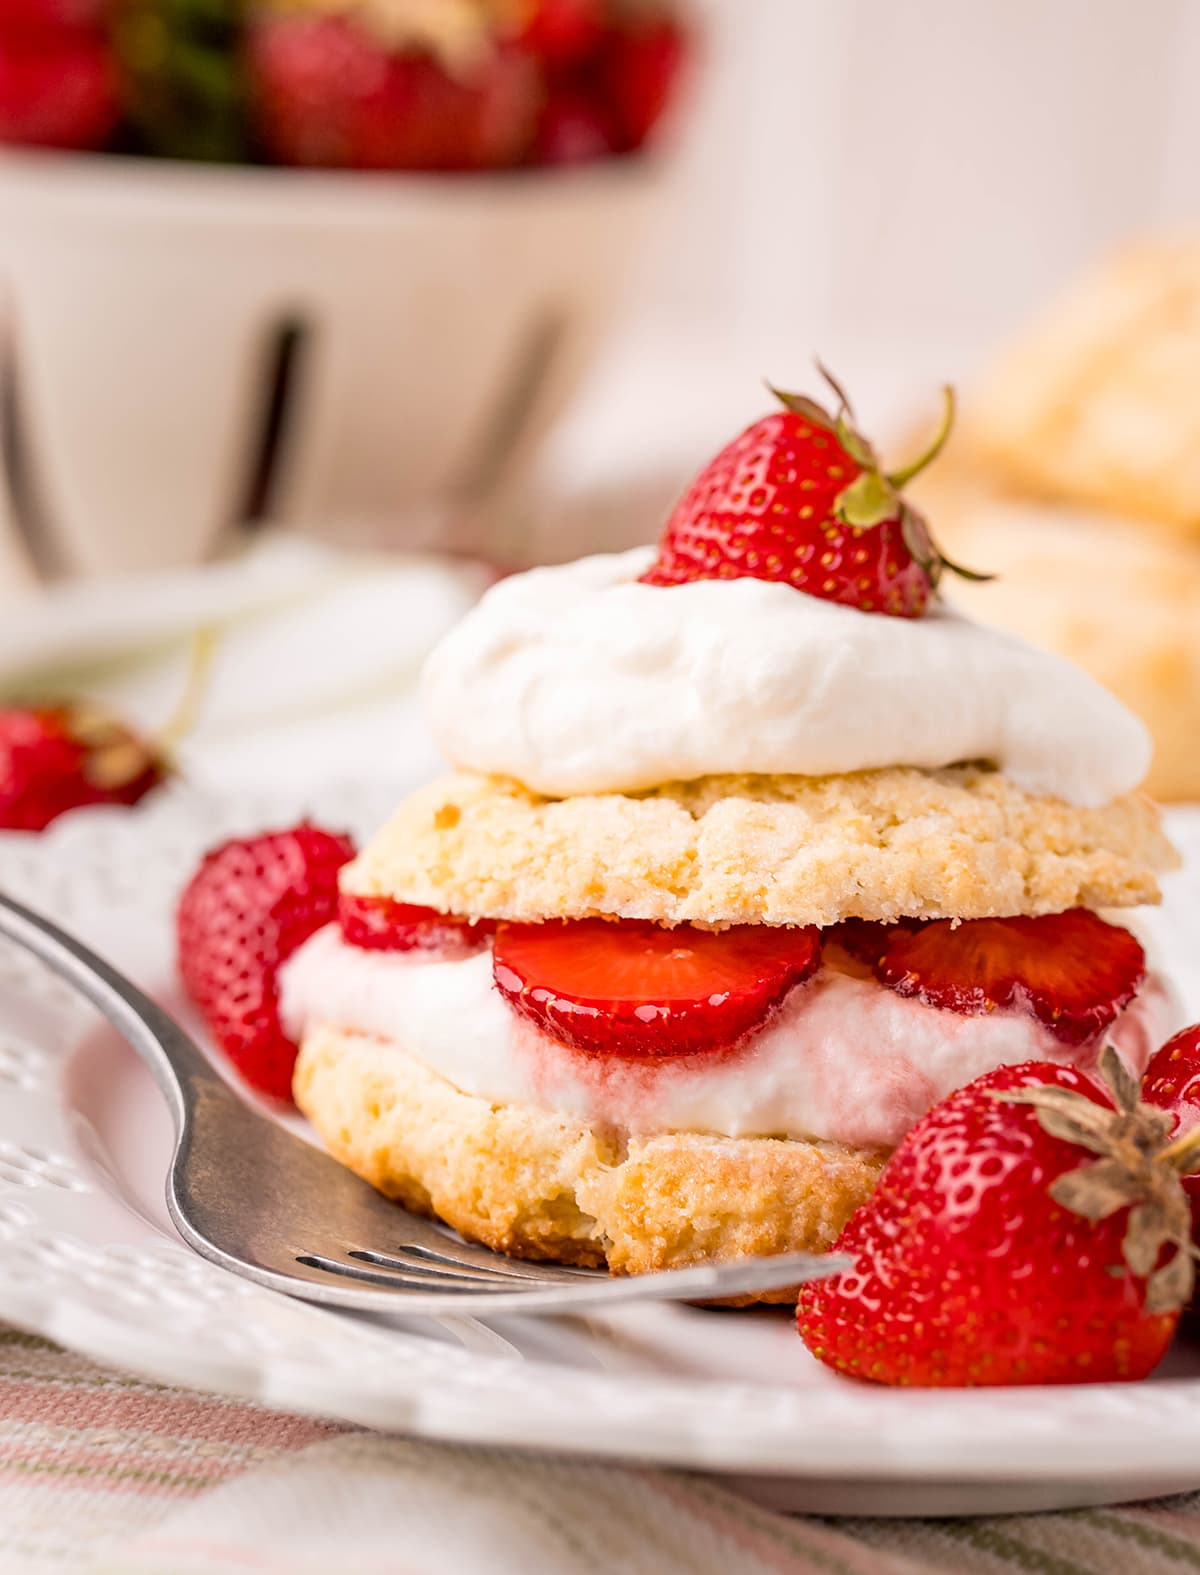 A biscuit strawberry shortcake layered with whipped cream and sliced strawberries on a white plate.